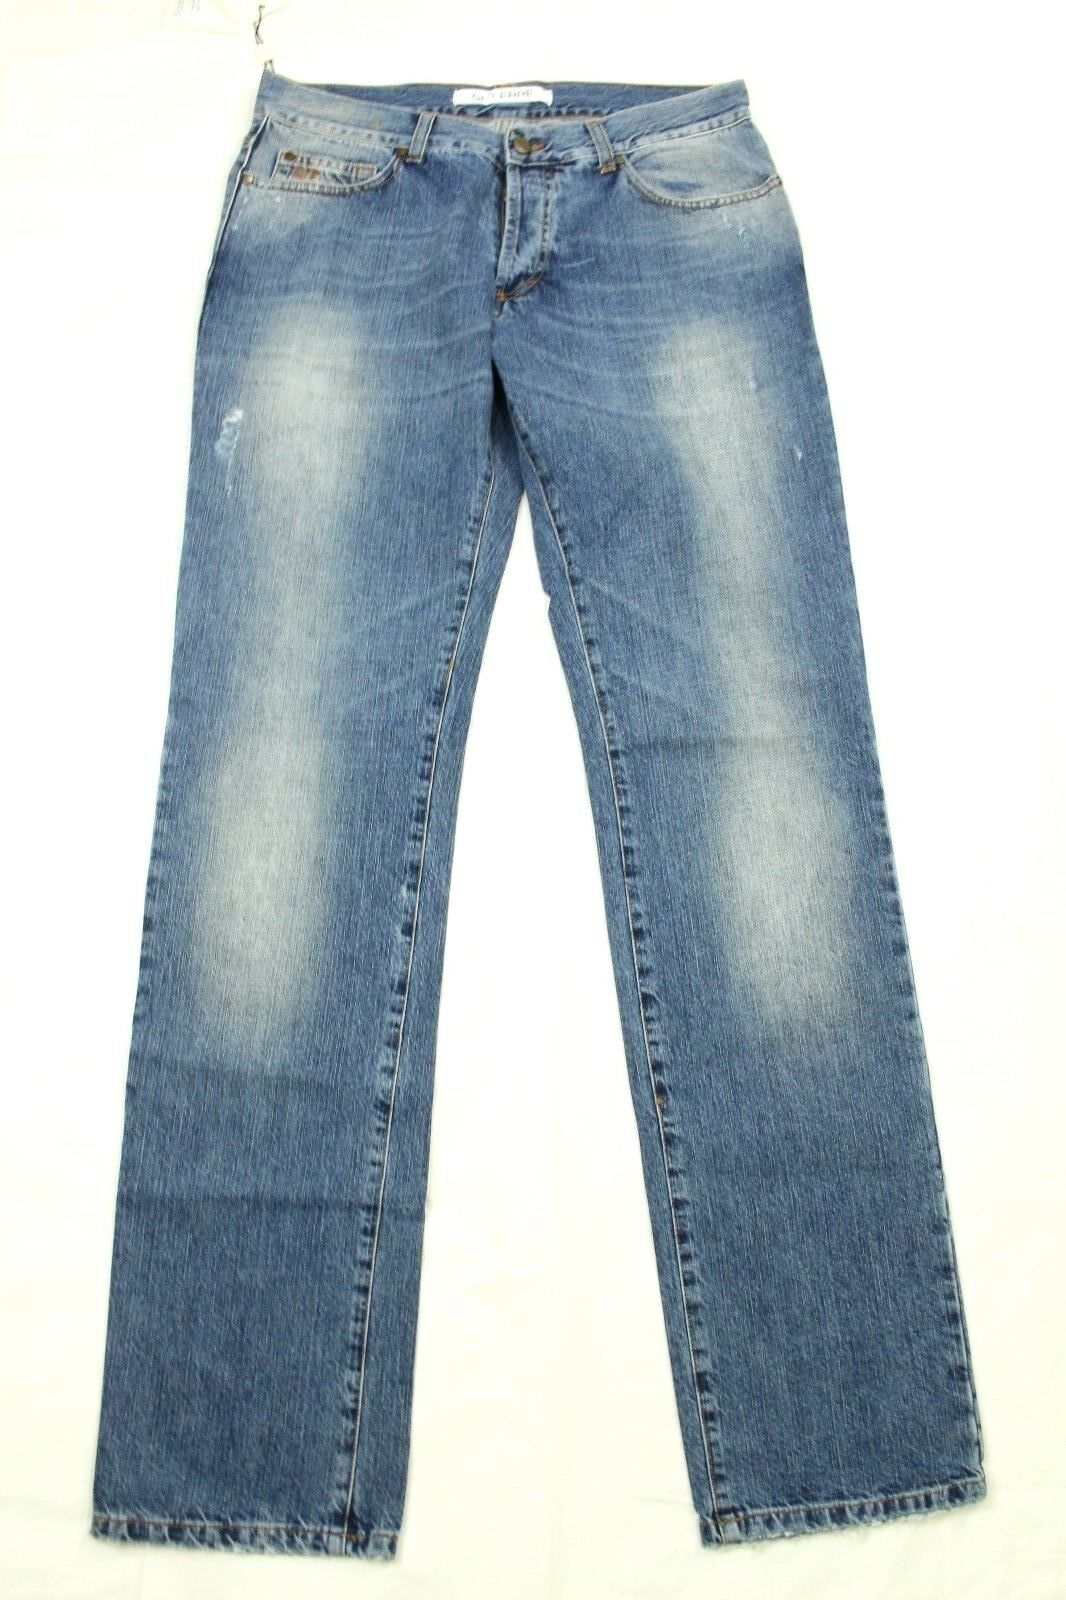 Gianfranco GF FERRE Men's Jeans Straight Distressed Button Fly Retail